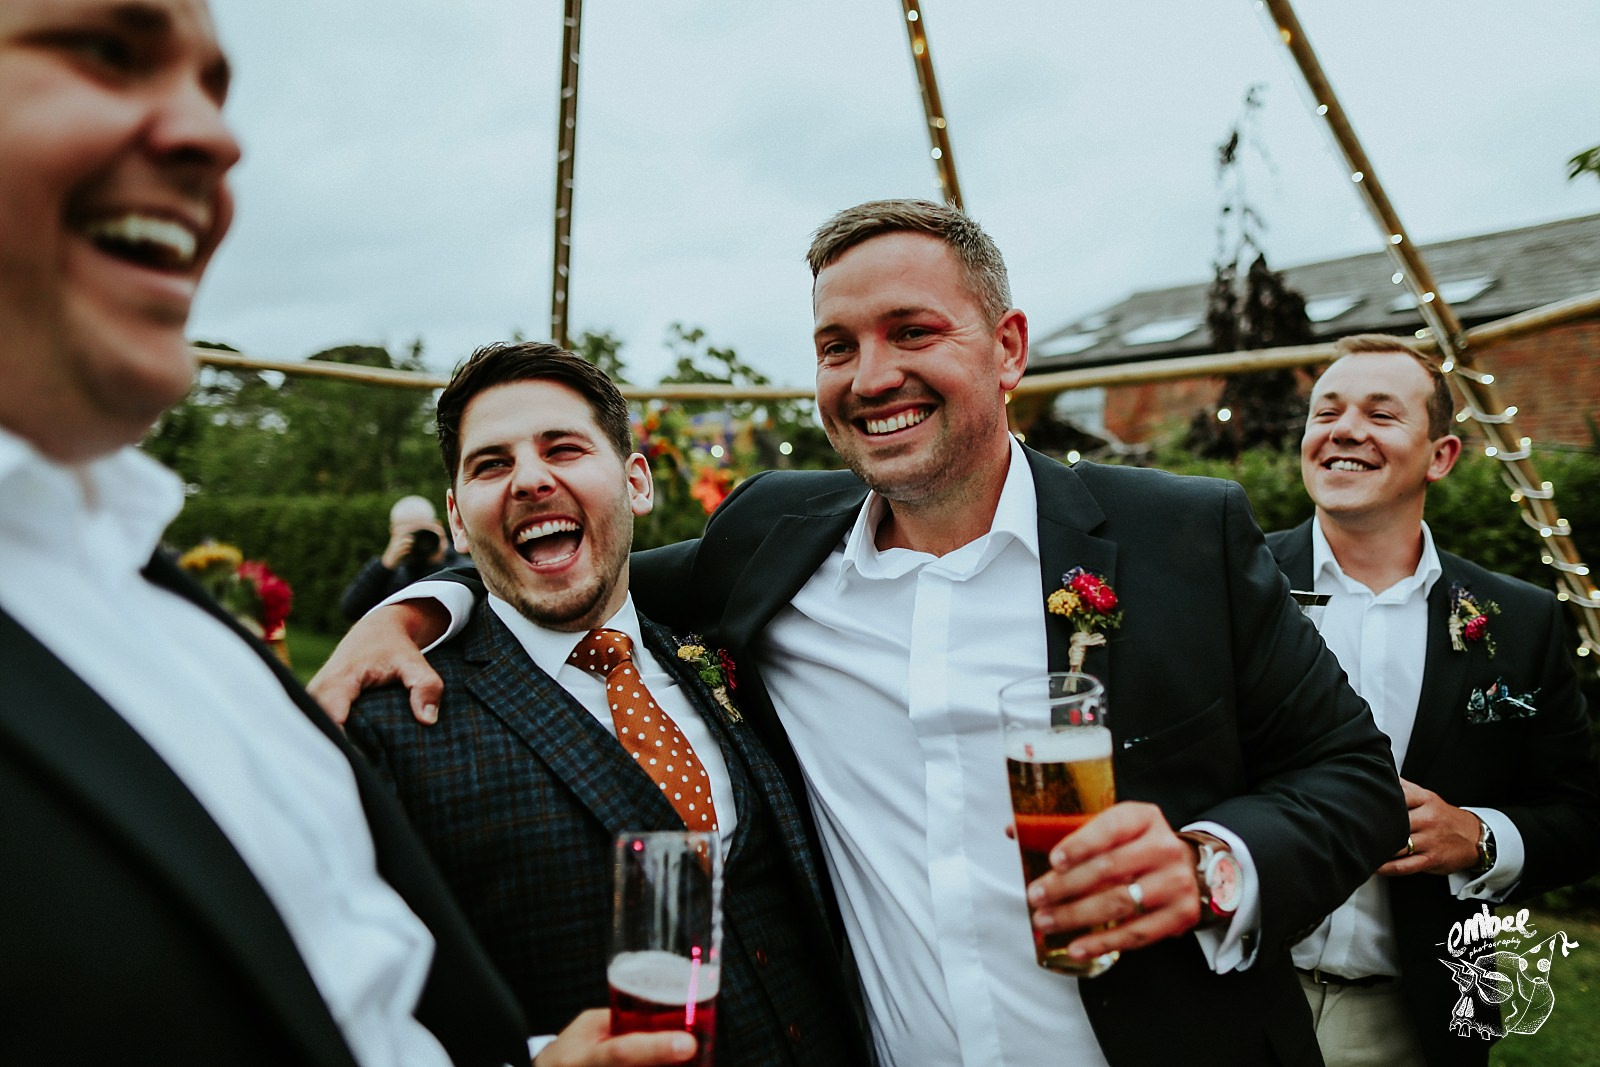 grooms joking around with groomsmen